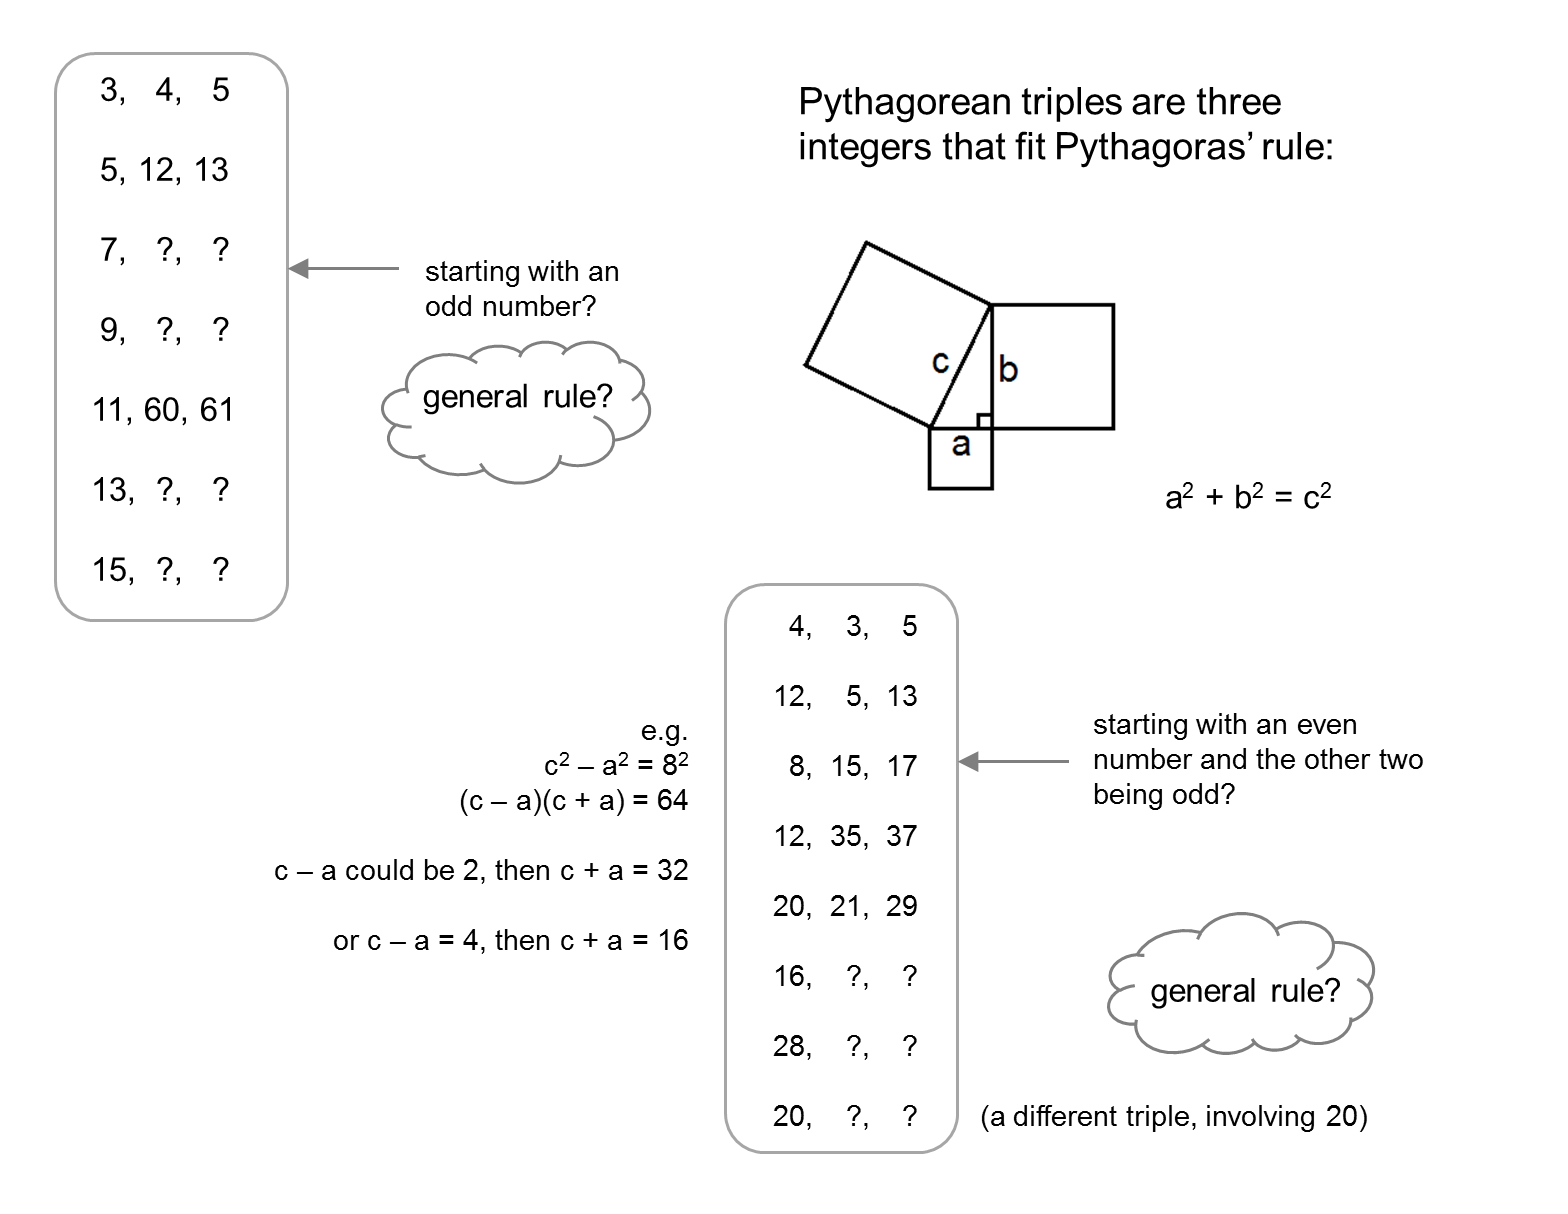 Worksheets Pythagorean Triples Worksheet resourceaholic pythagoras theorem the mathematics assessment programme also has a pythagorean triples activity and don steward students looking for